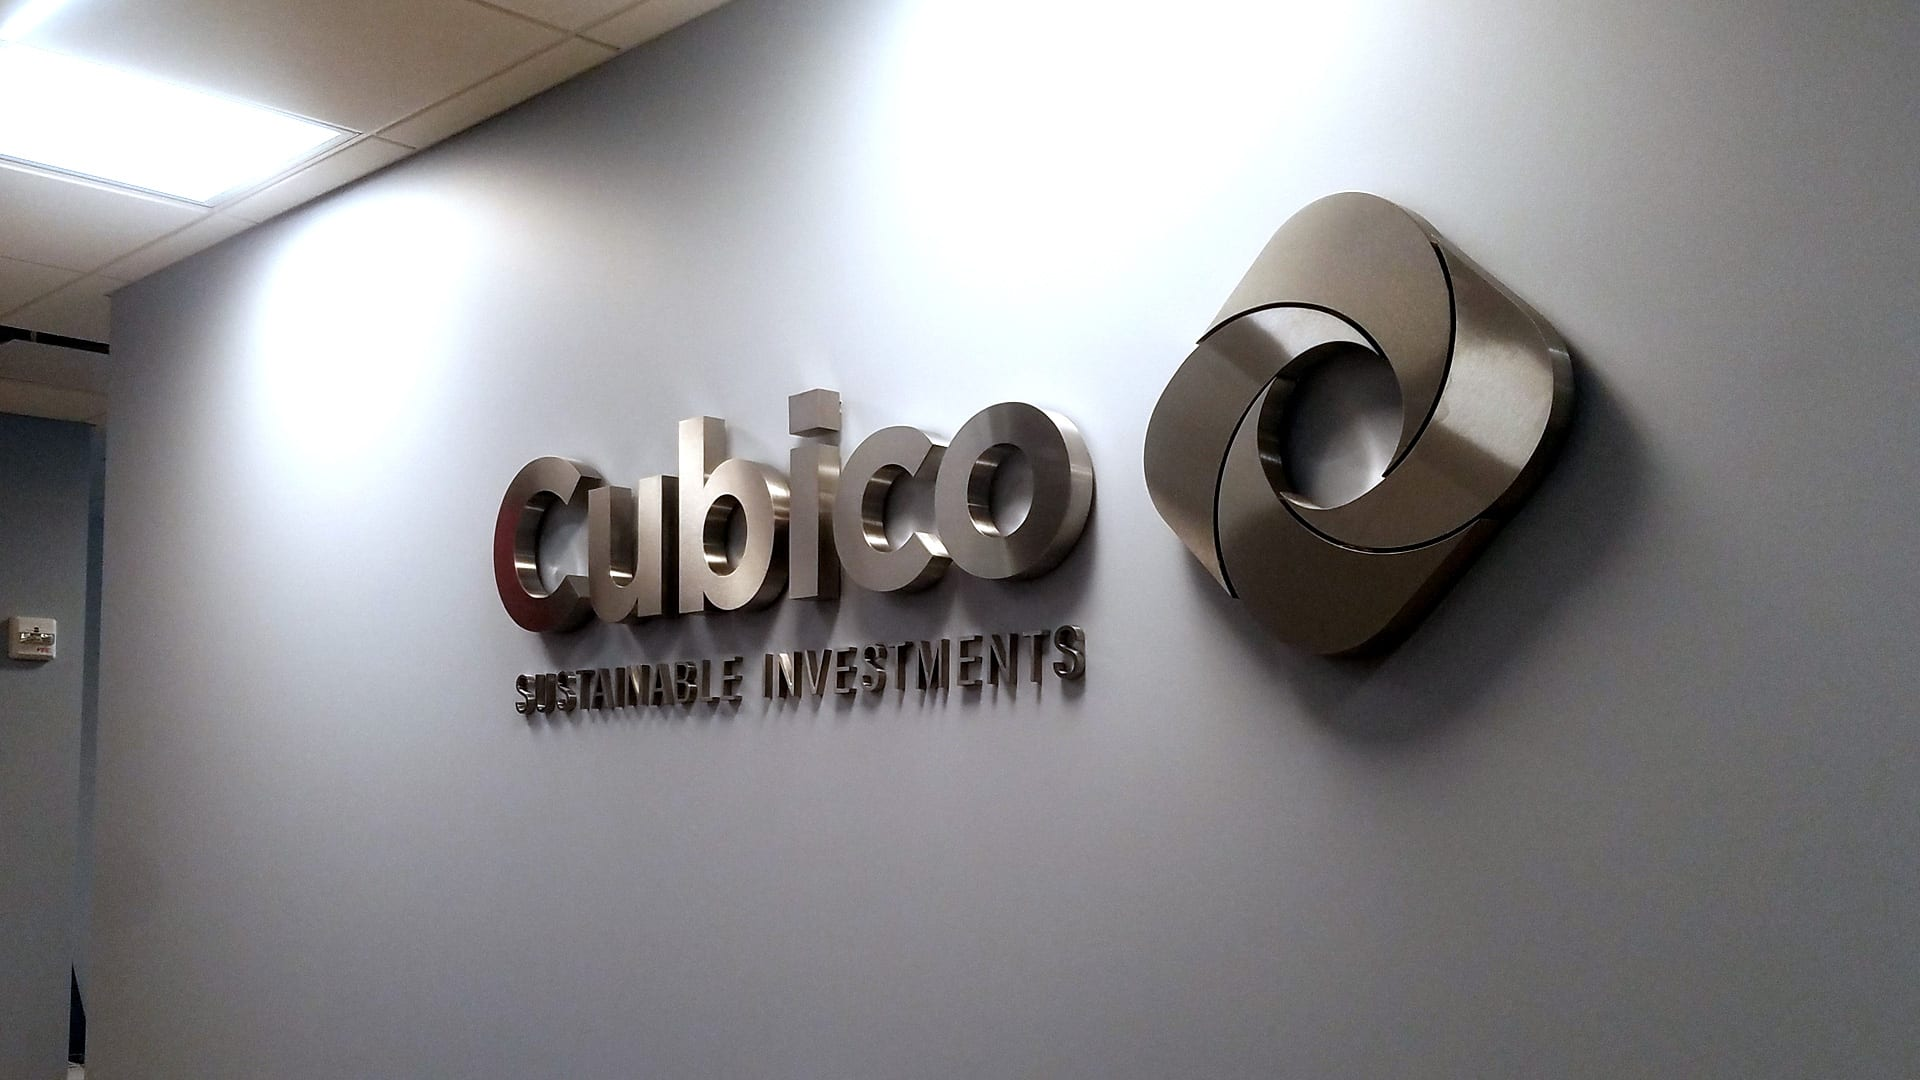 Interior Stainless Wall Letters for Cubico